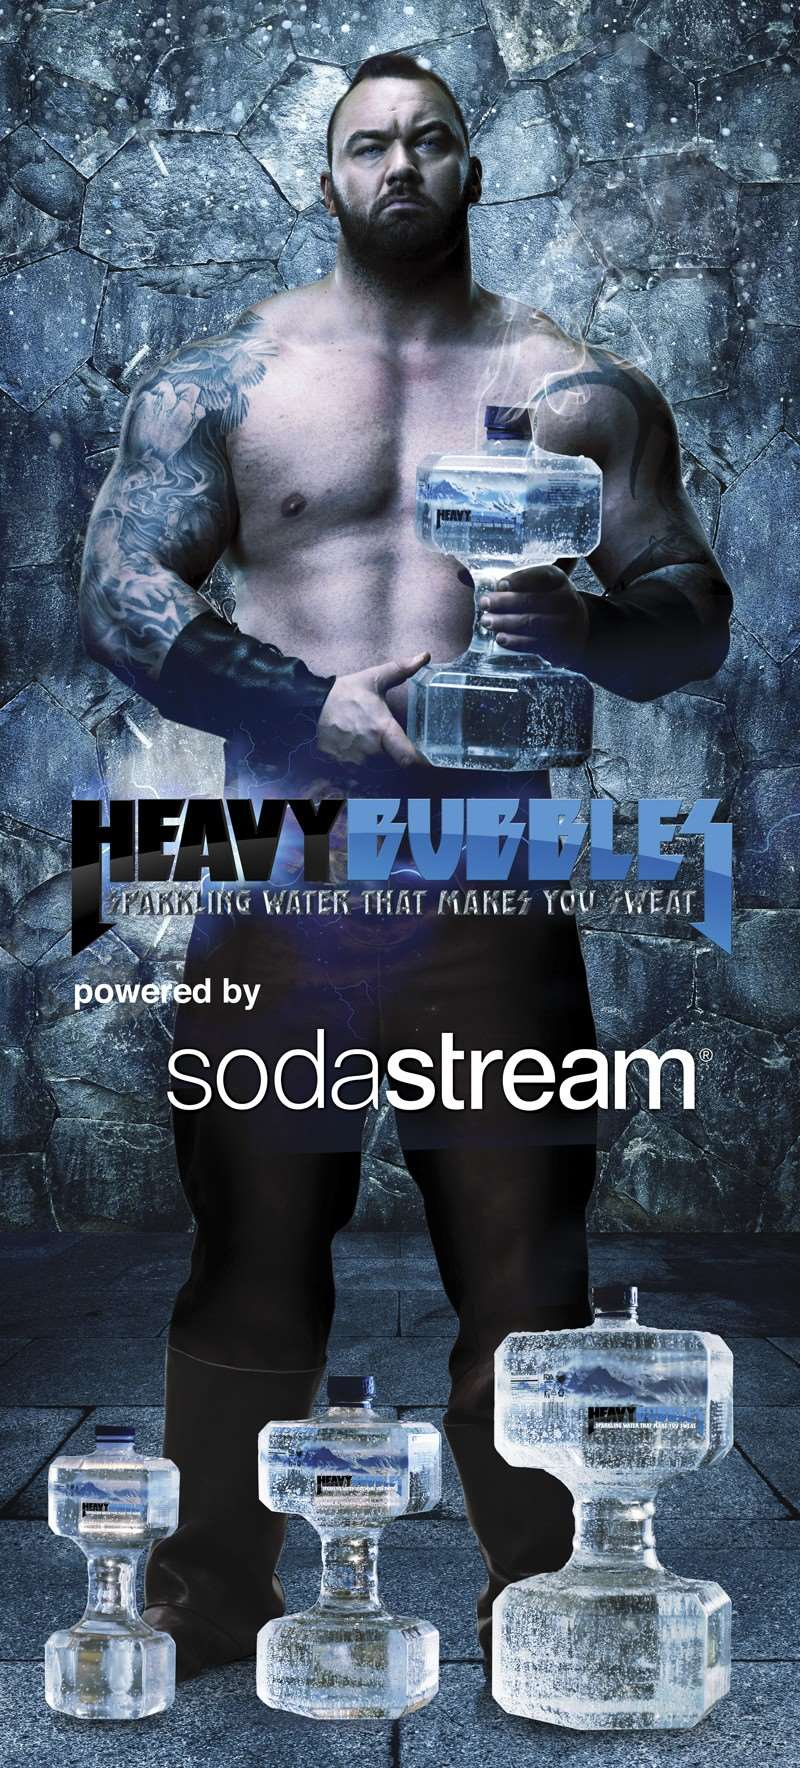 SodaStream_Heavy_Bubbles_Thor_Bjornsson-1